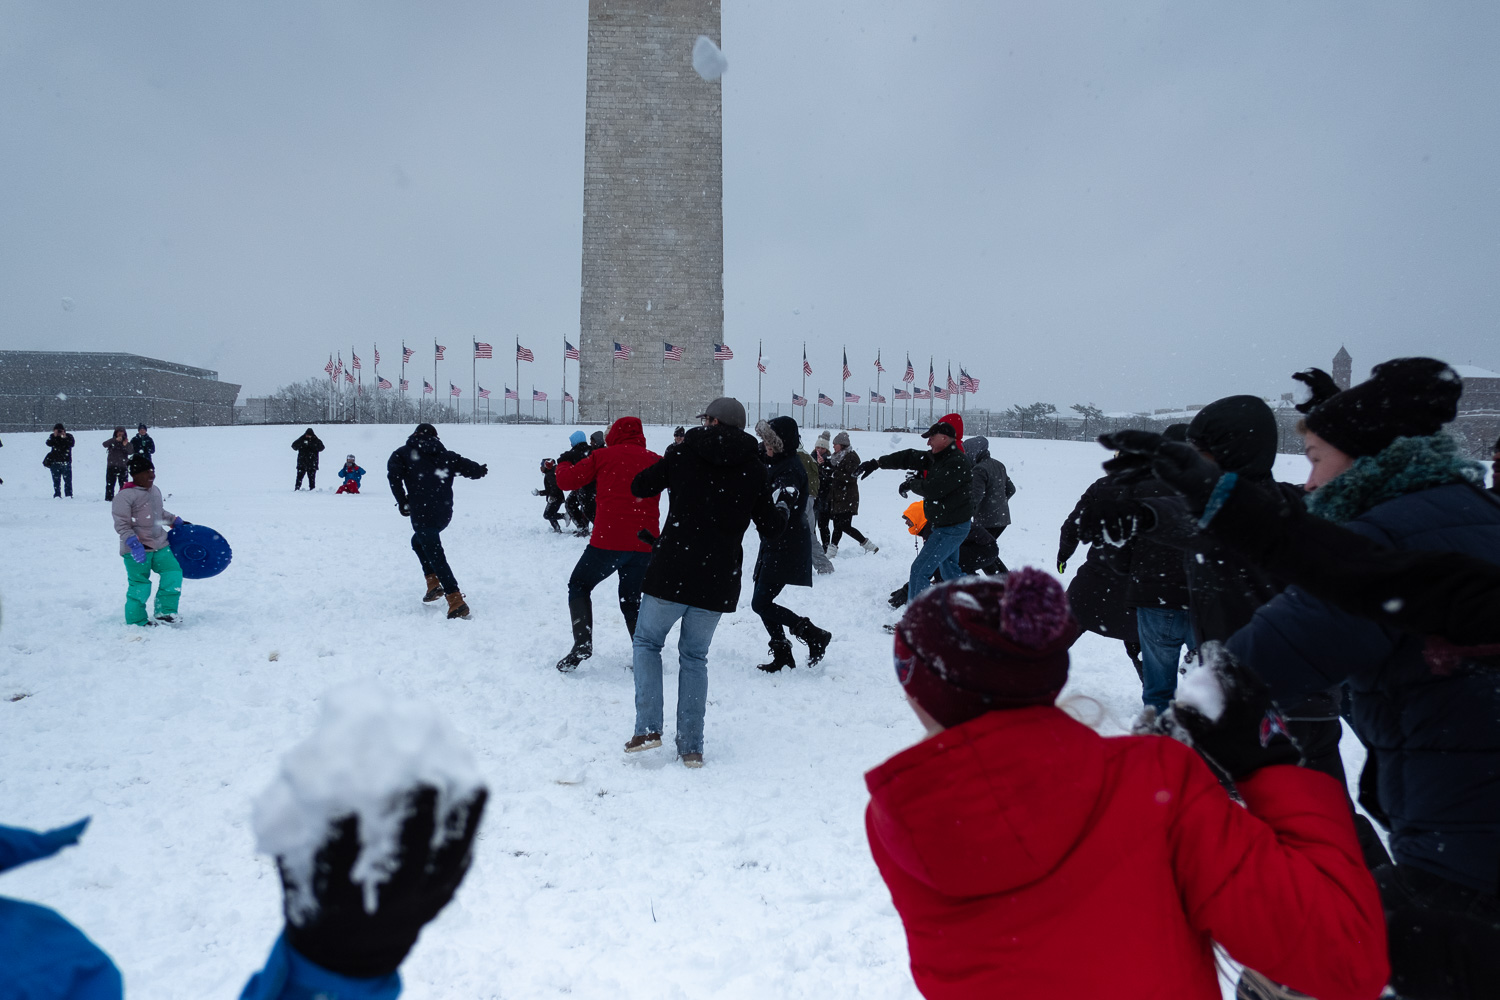 Before I left the house in the morning, I heard about a planned one p.m. snowball fight that would take place at the Washington Monument. That was the only plan I had for the day. Fujifilm X-Pro2, 18mm, 1/5800 @ f2.8, ISO 400.